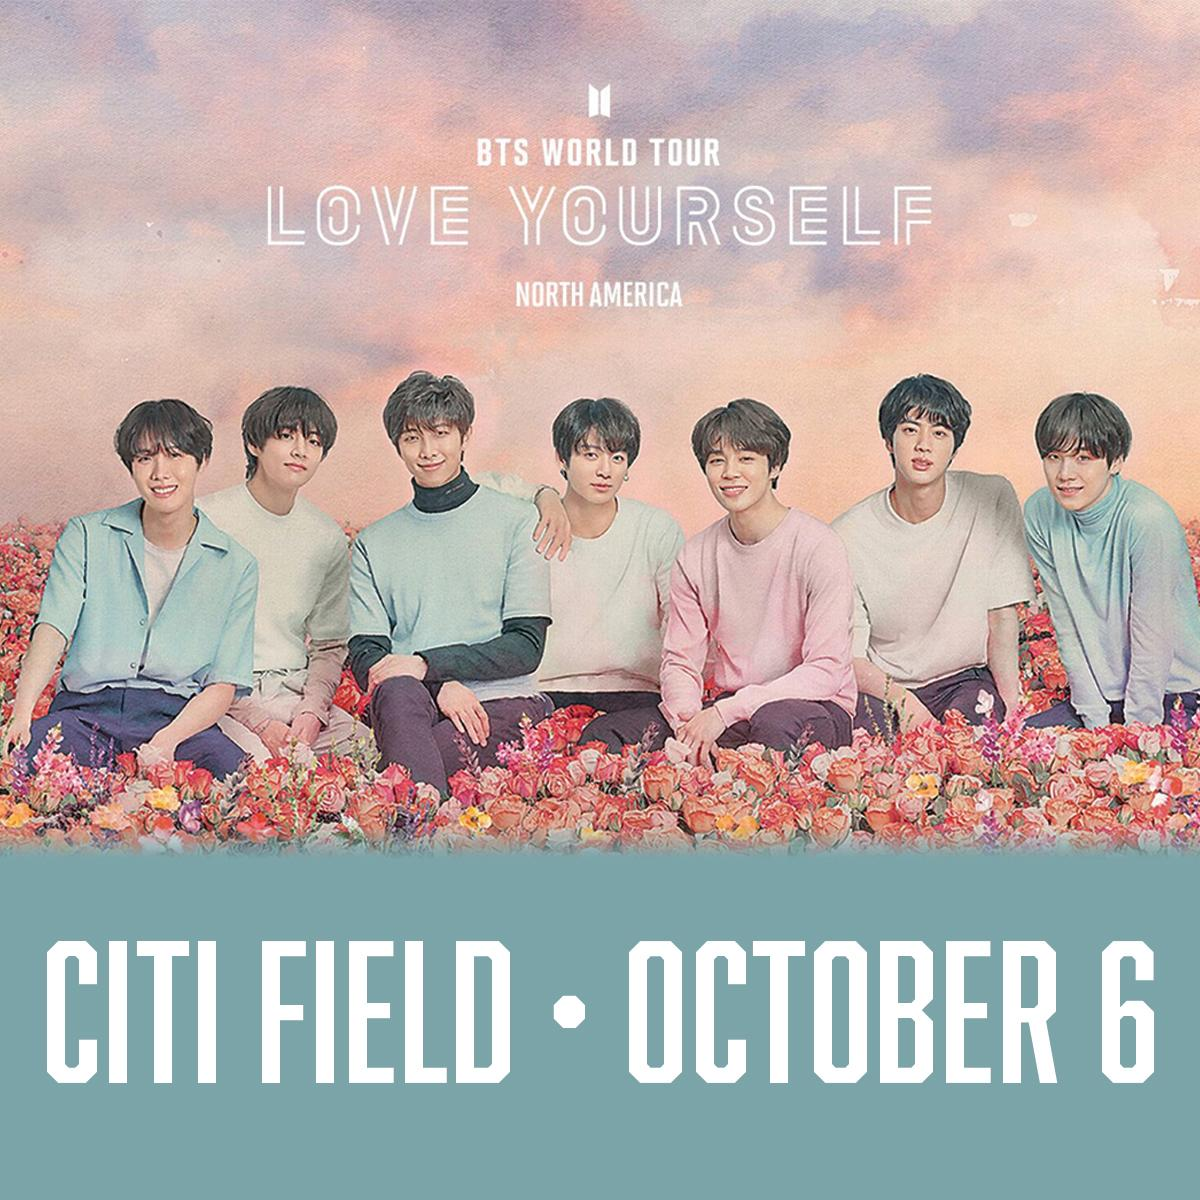 bts-citifield